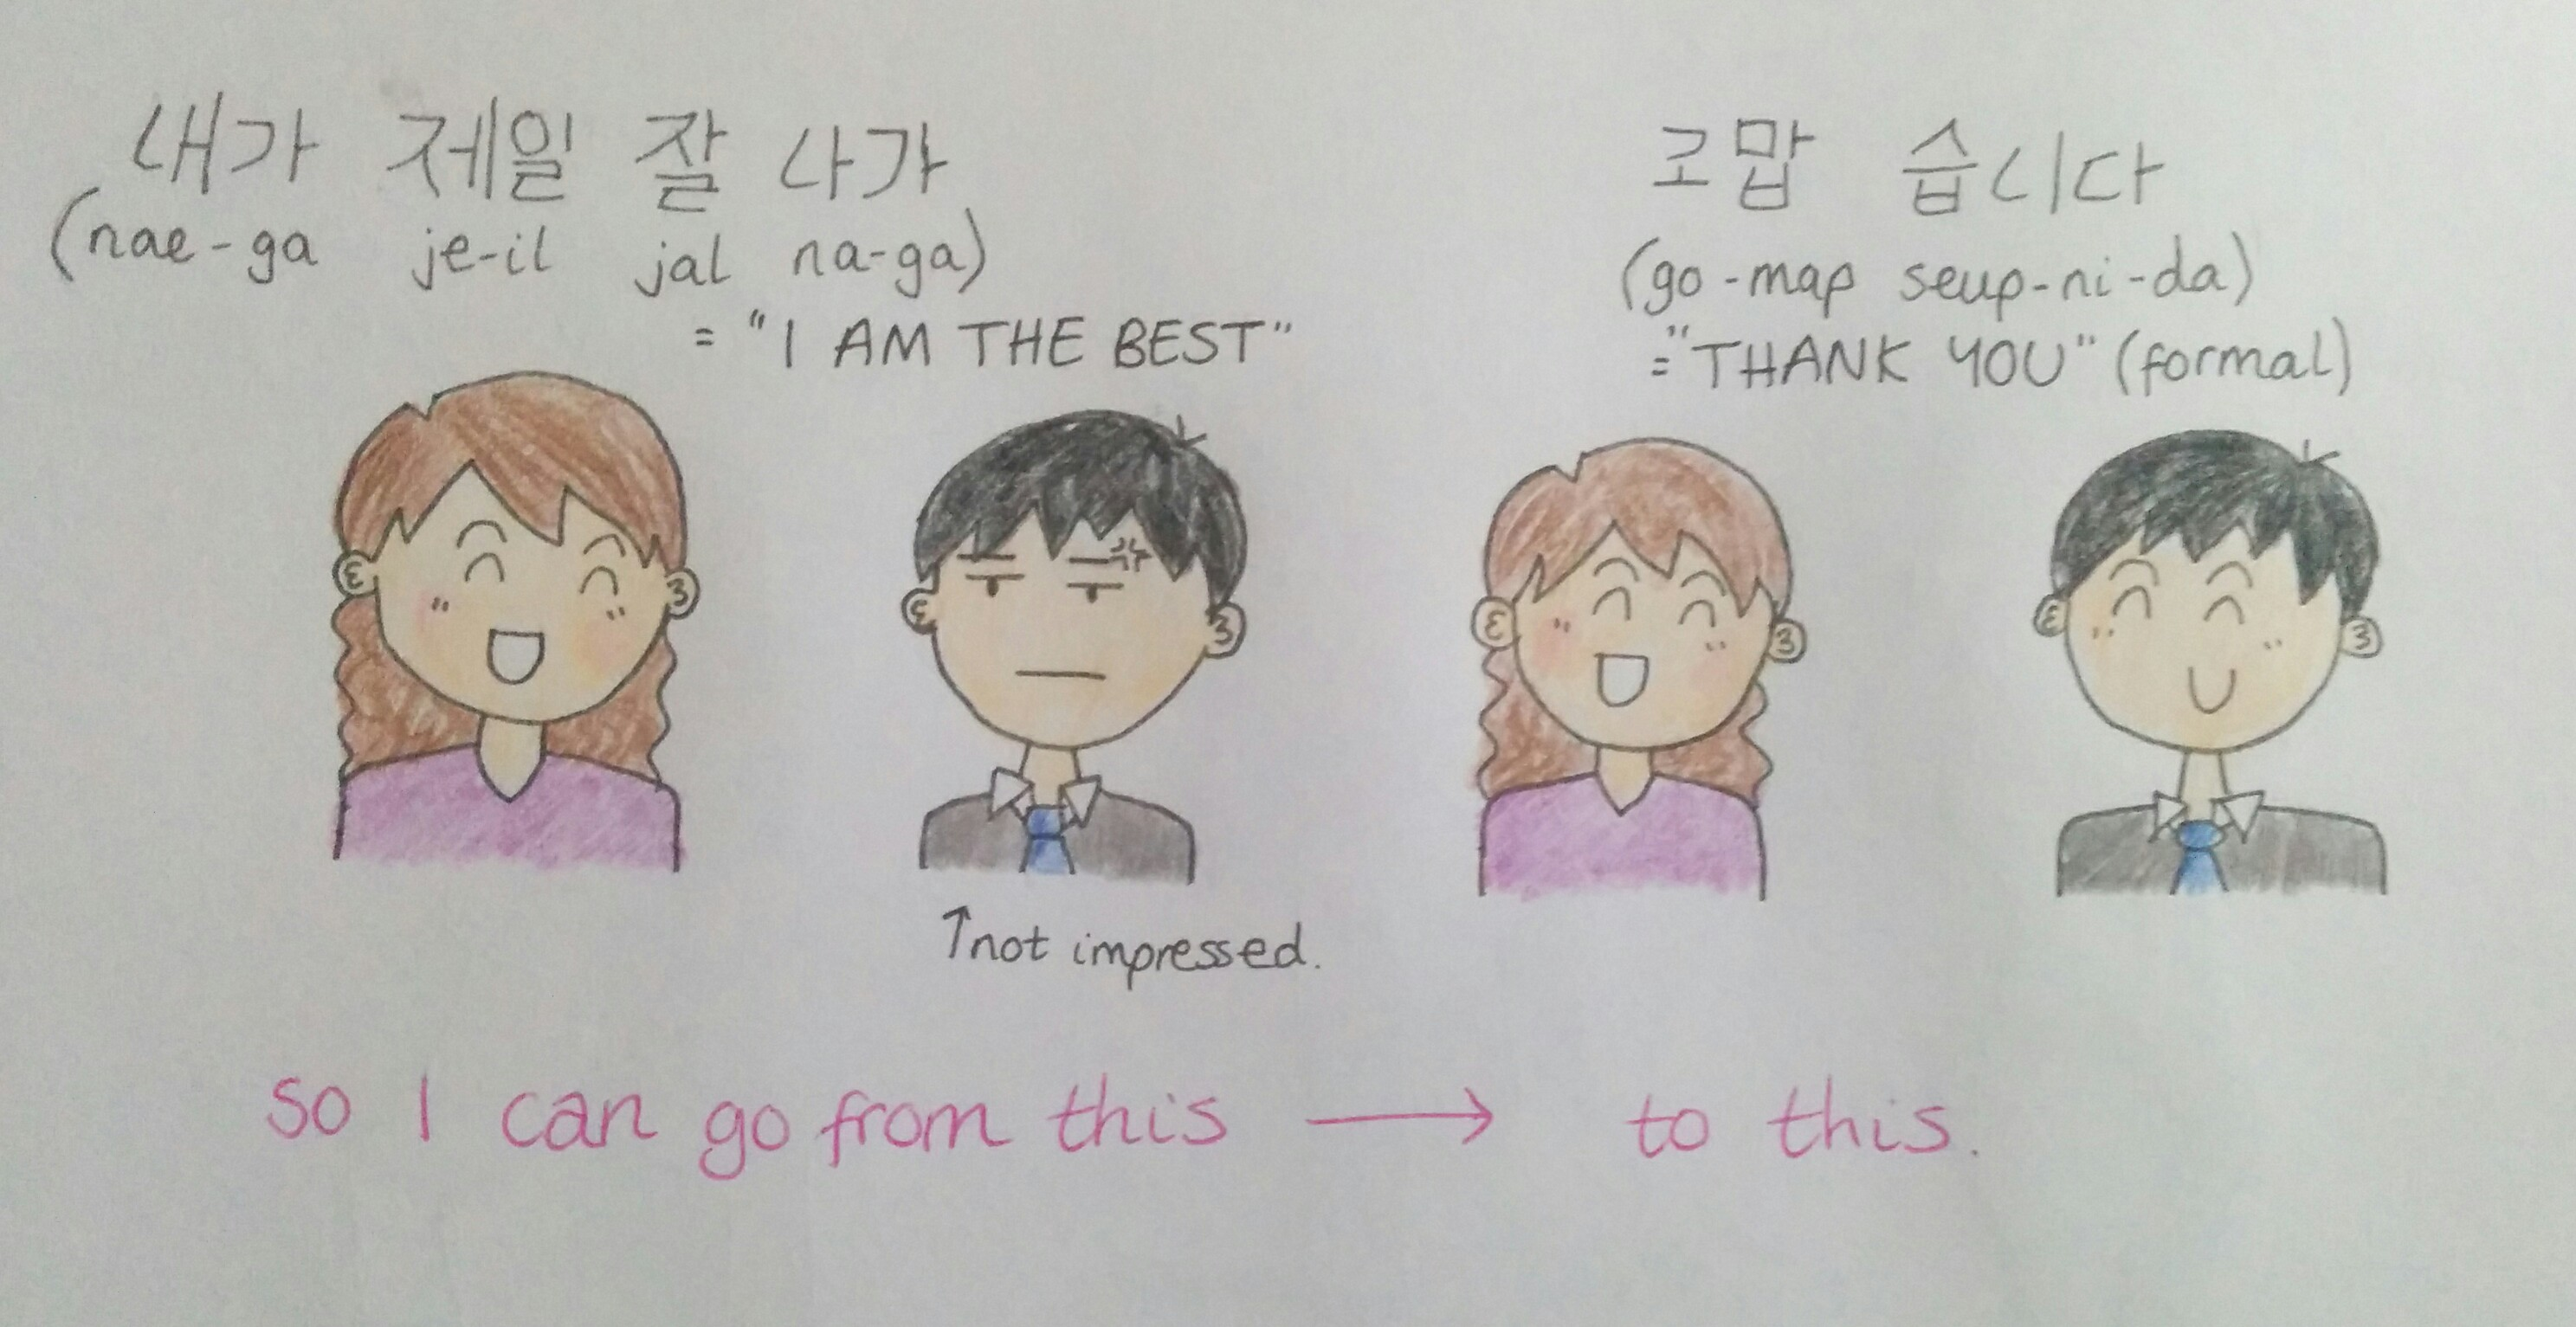 how to write lee in korean